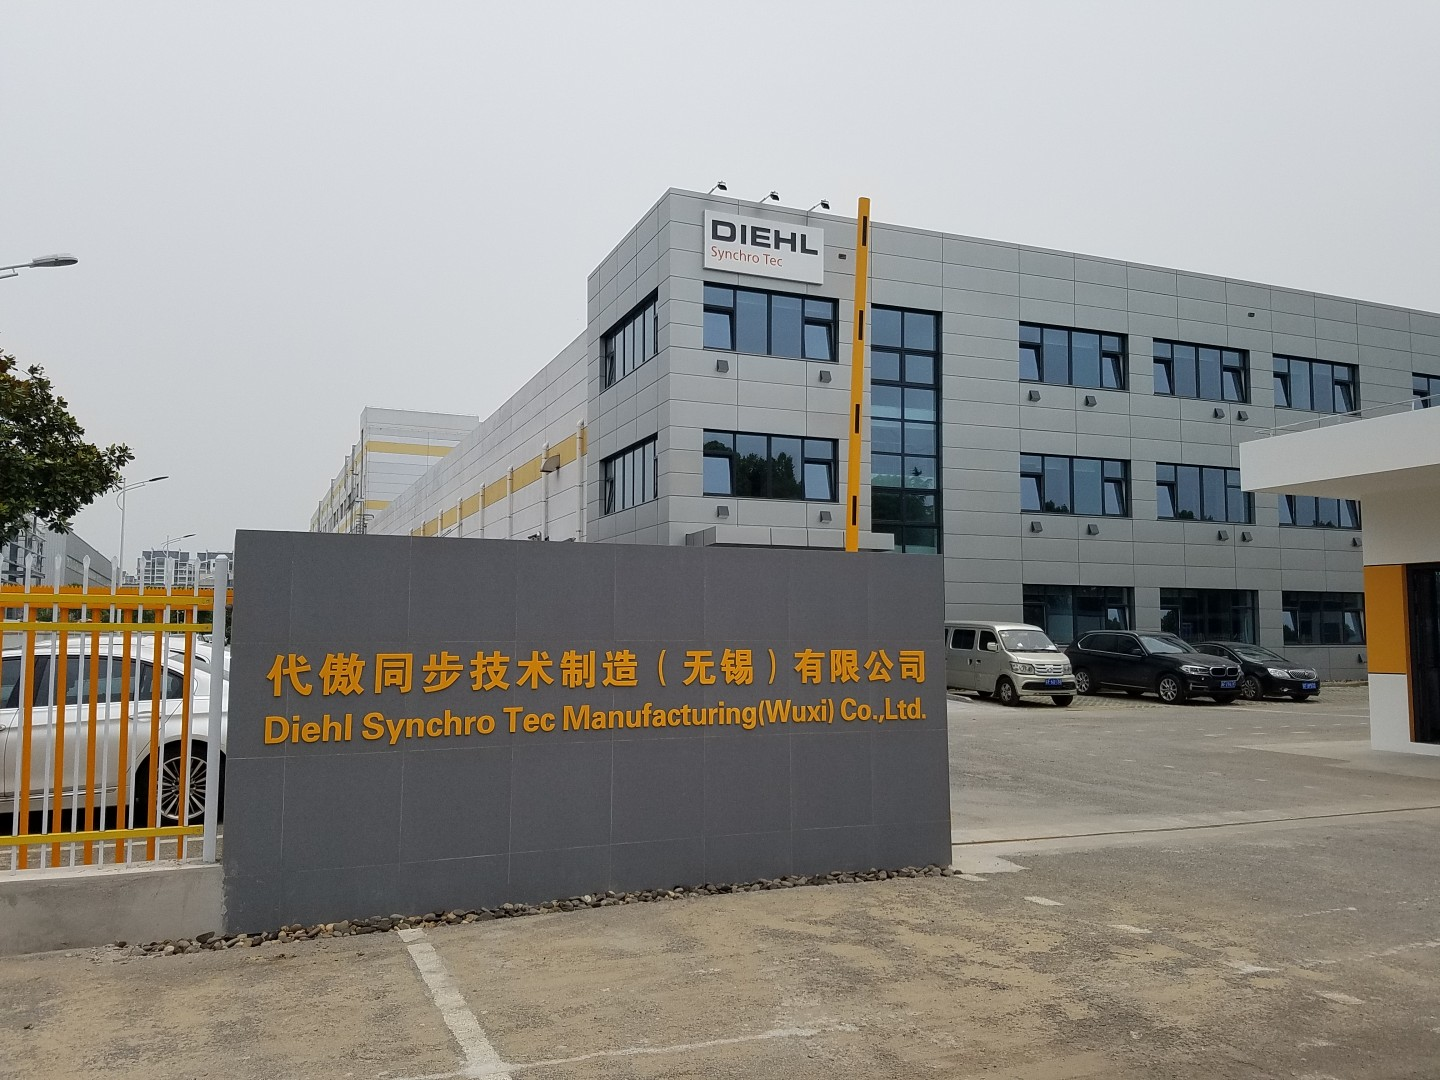 SAP implementation at Diehl SynchroTec in Wuxi, China